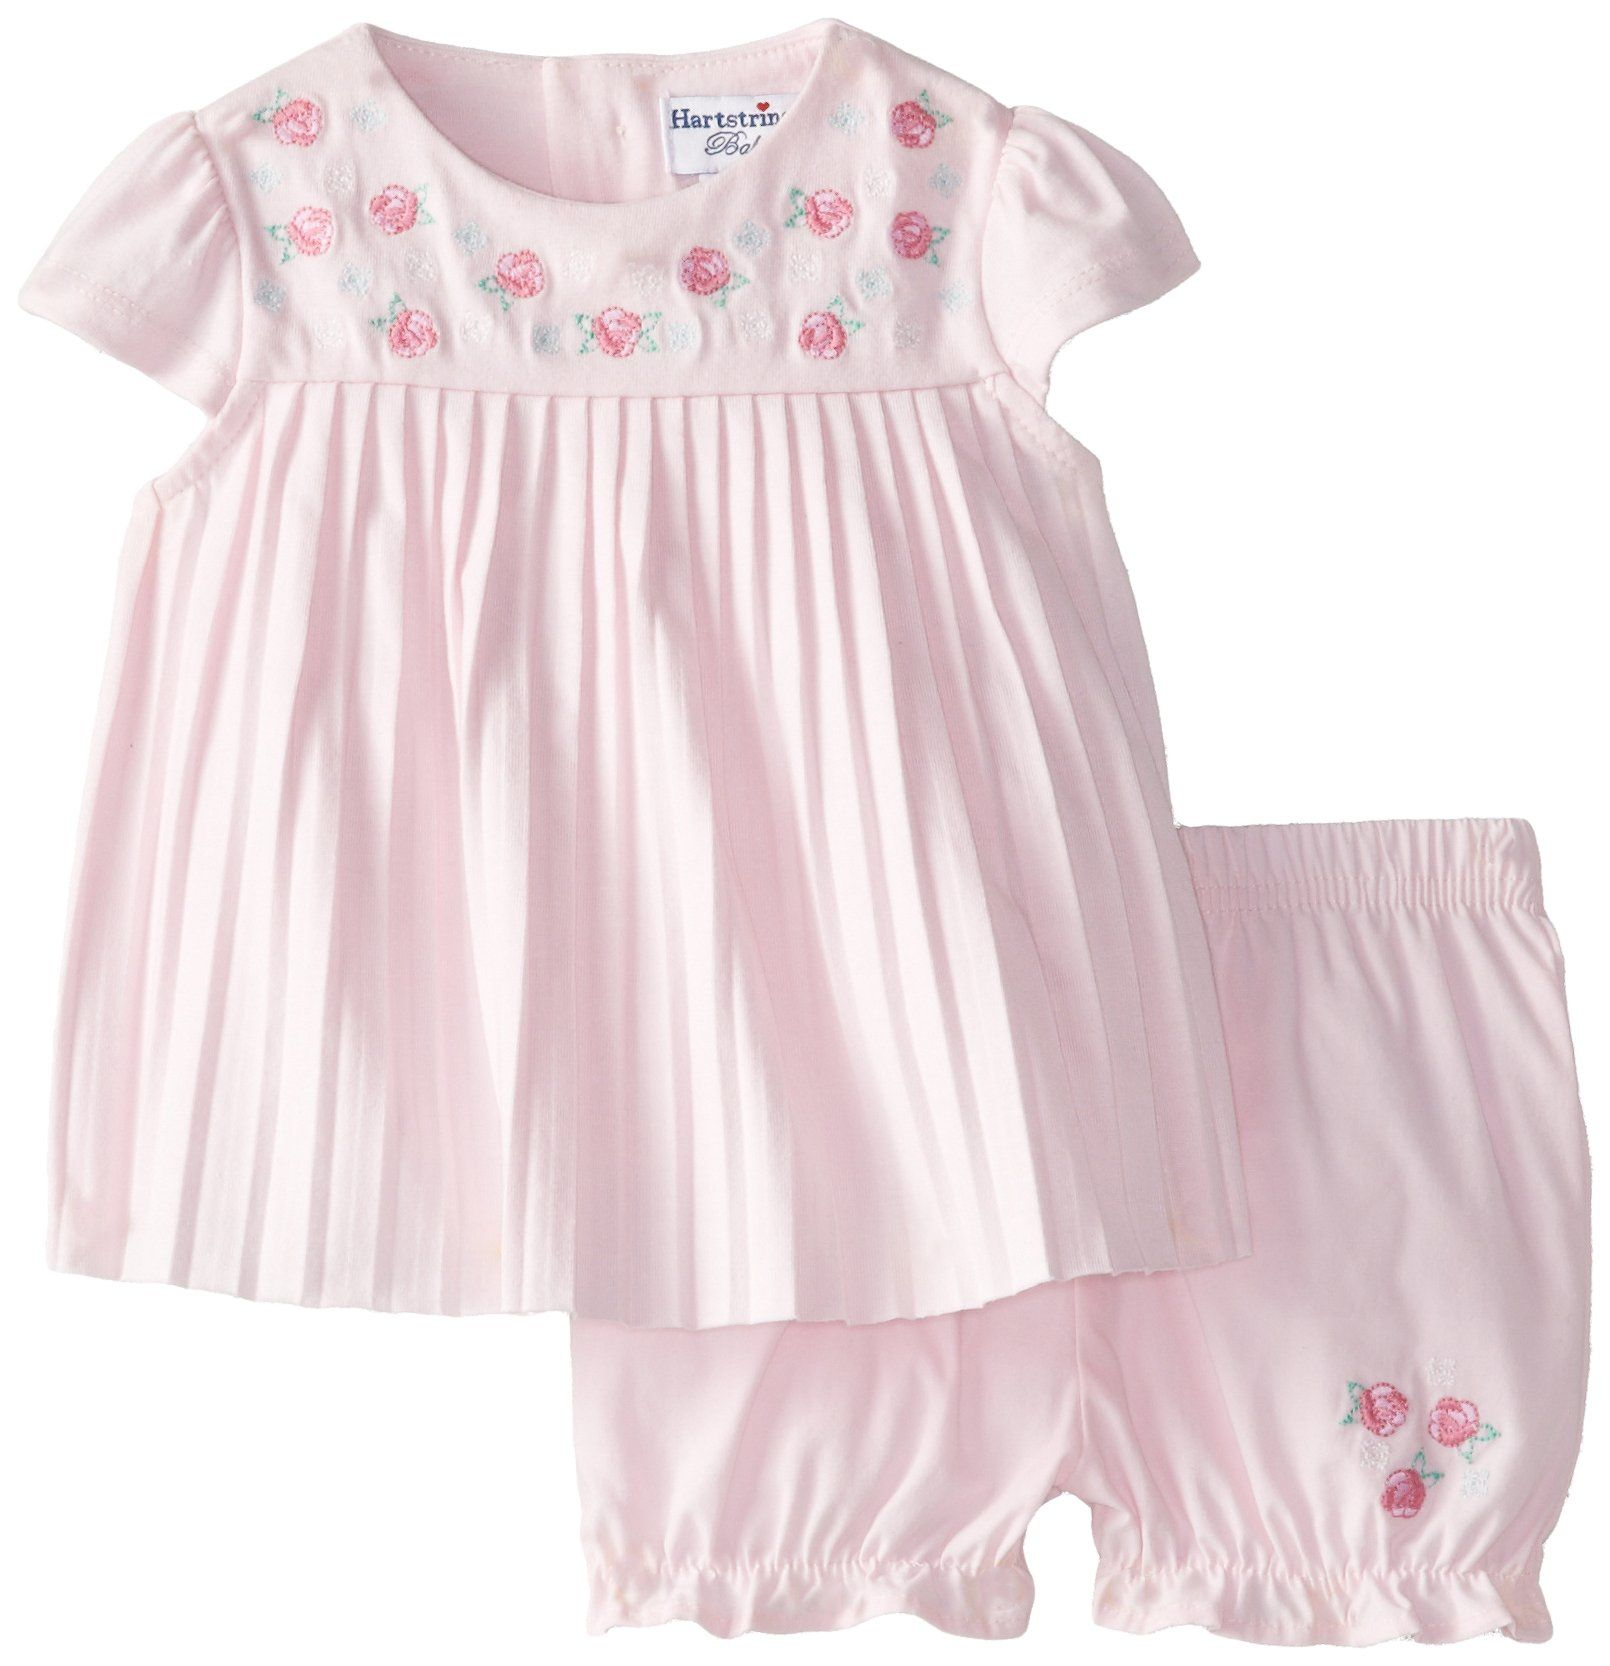 Hartstrings Baby-Girls Newborn Cotton Jersey Top and Poplin Bloomer Set, Blush Bride, 0-3 Months. 2 piece set. Embroidered roses at neckline, pleated bodice. Partial button up back. Coordinating cotton poplin bloomer short with embroidery on front.